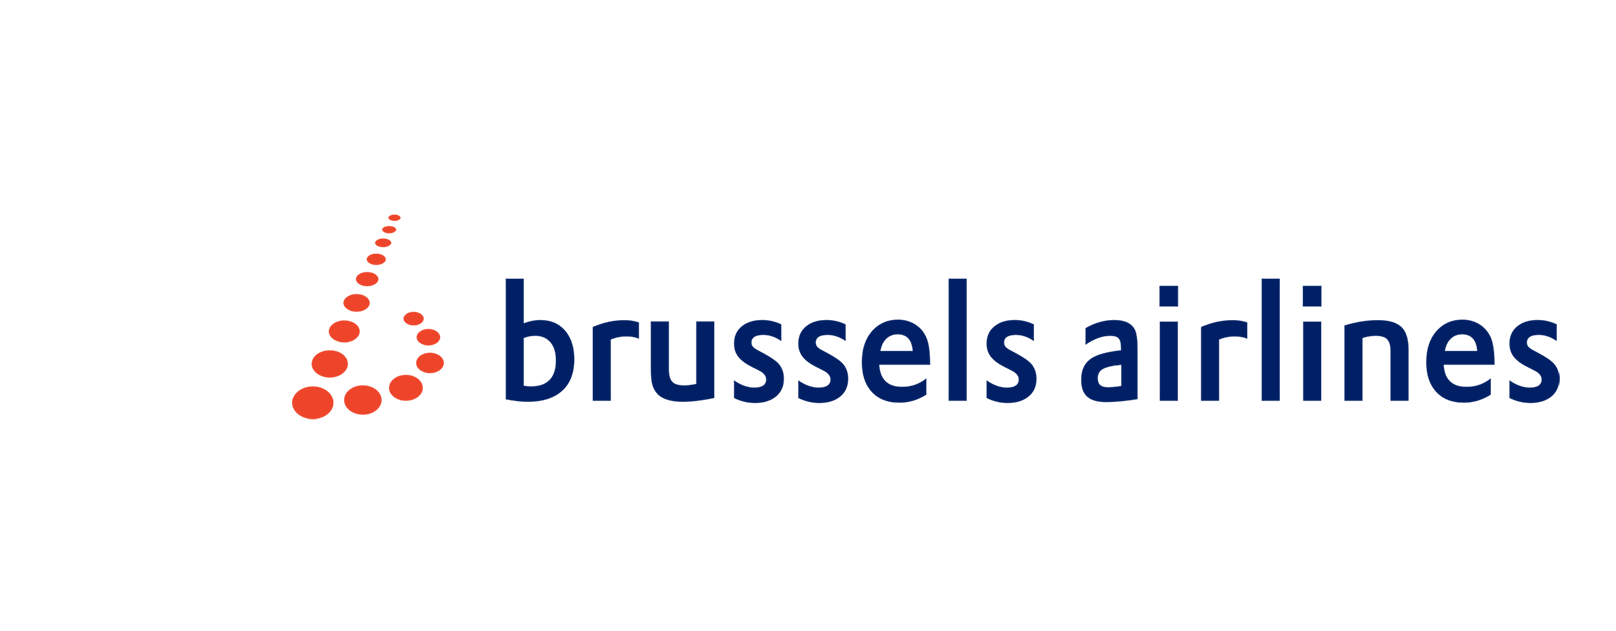 brussels_2.png